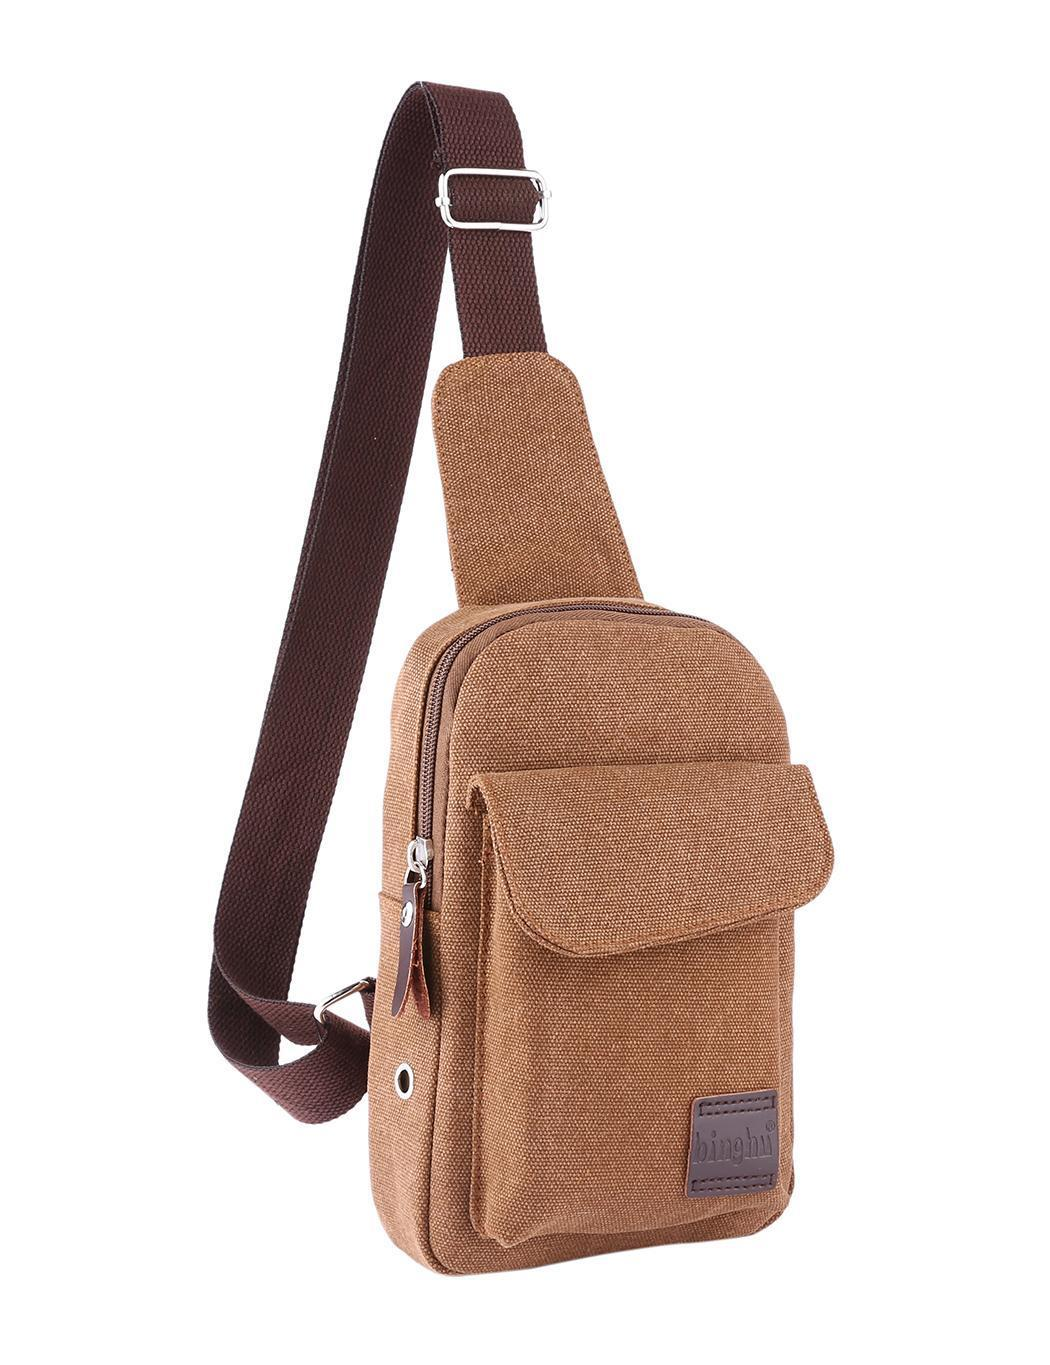 Buy Misslala Men Crossbody Bags at Best Prices Online in Pakistan ... e8b6e3a8899ef